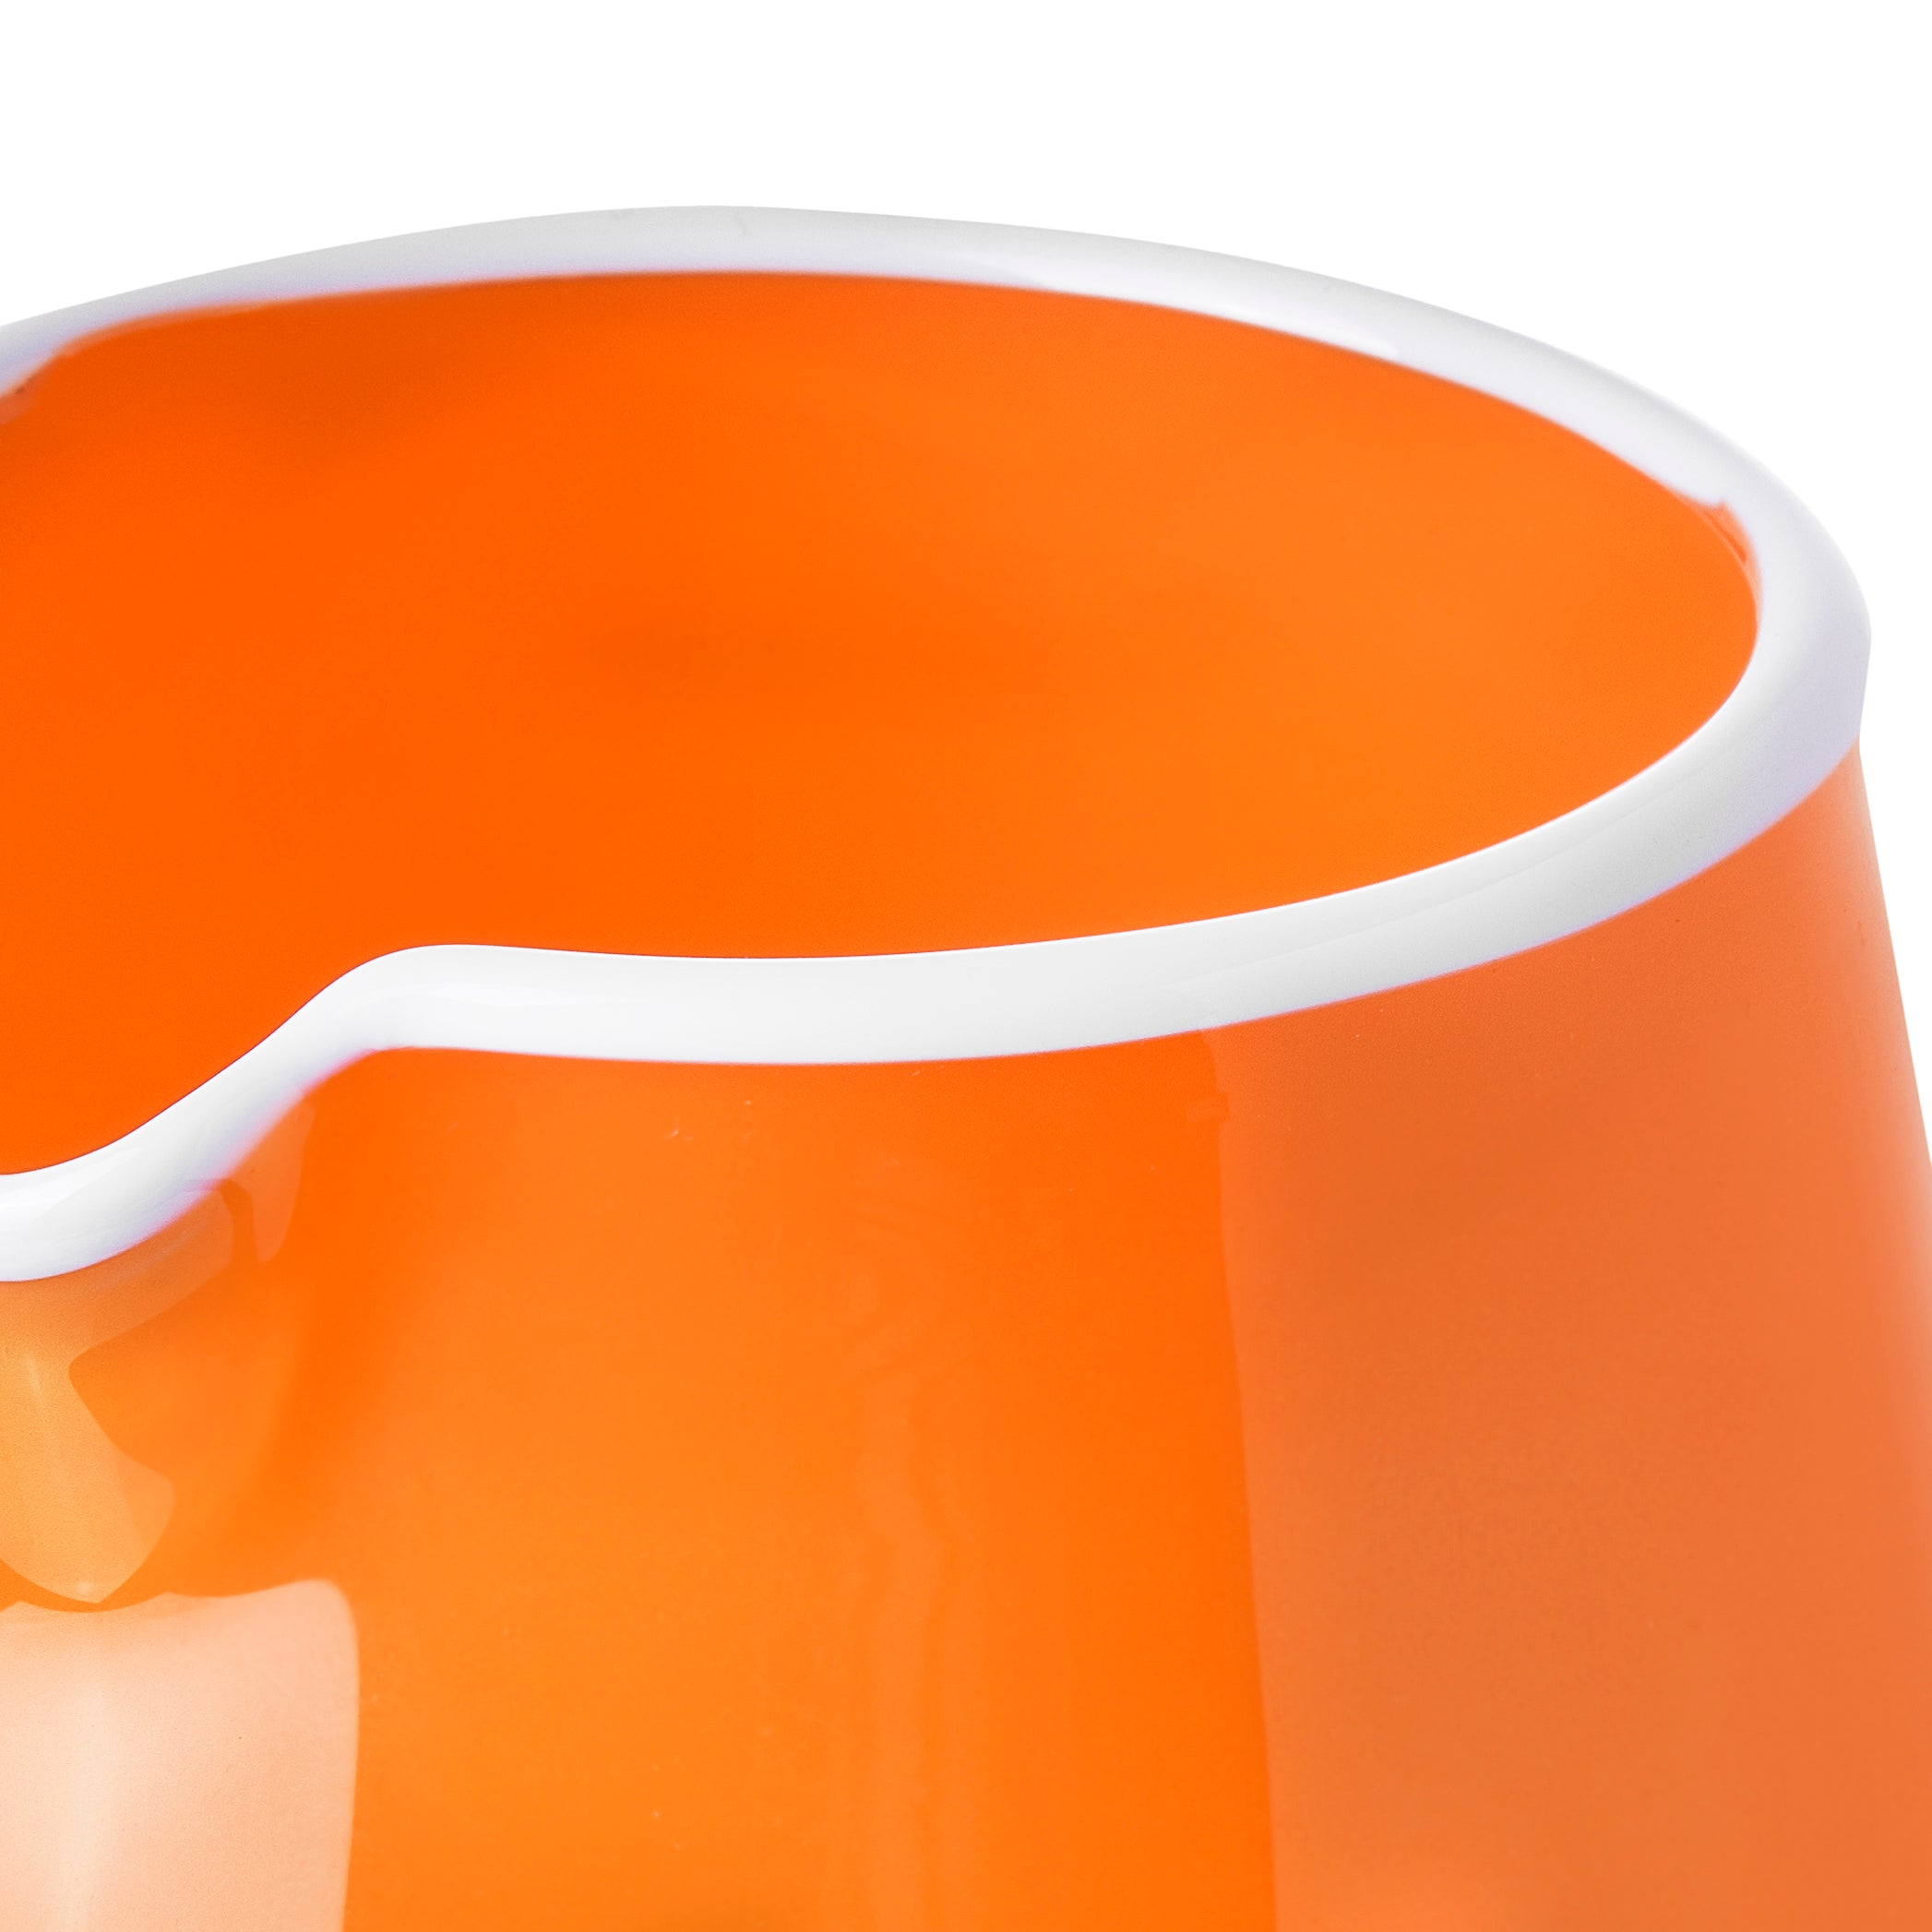 Handblown Bumba Jug in Orange